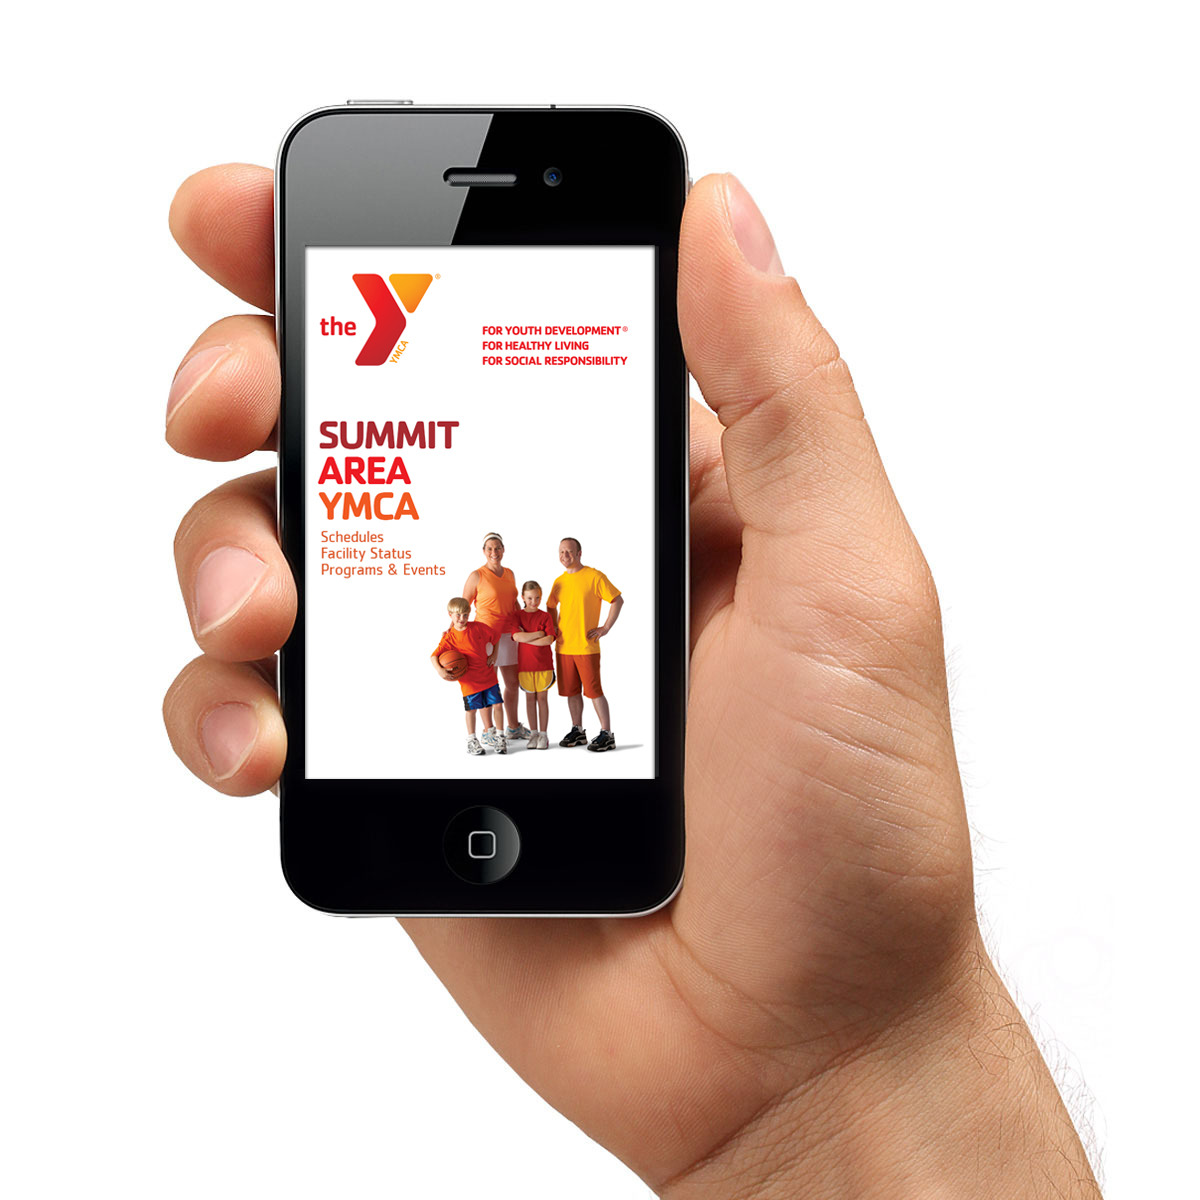 2ec8a2a60d495ddaeb68_Summit_Area_YMCA_App.jpg